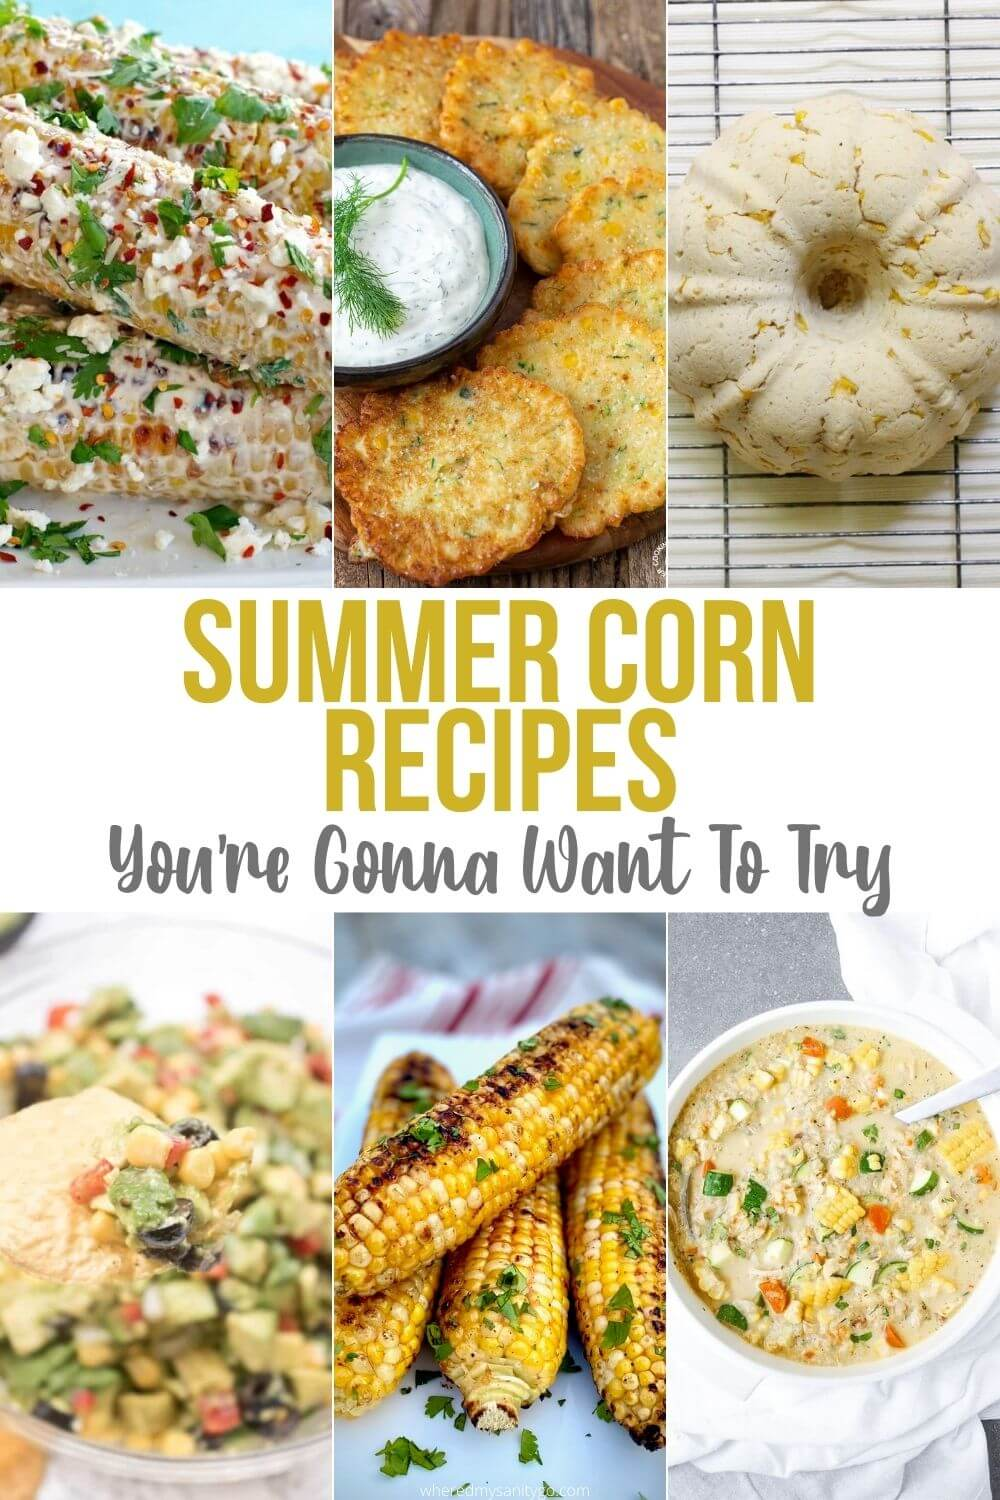 Best Summer Corn Recipes Using Fresh Frozen or Canned Corn